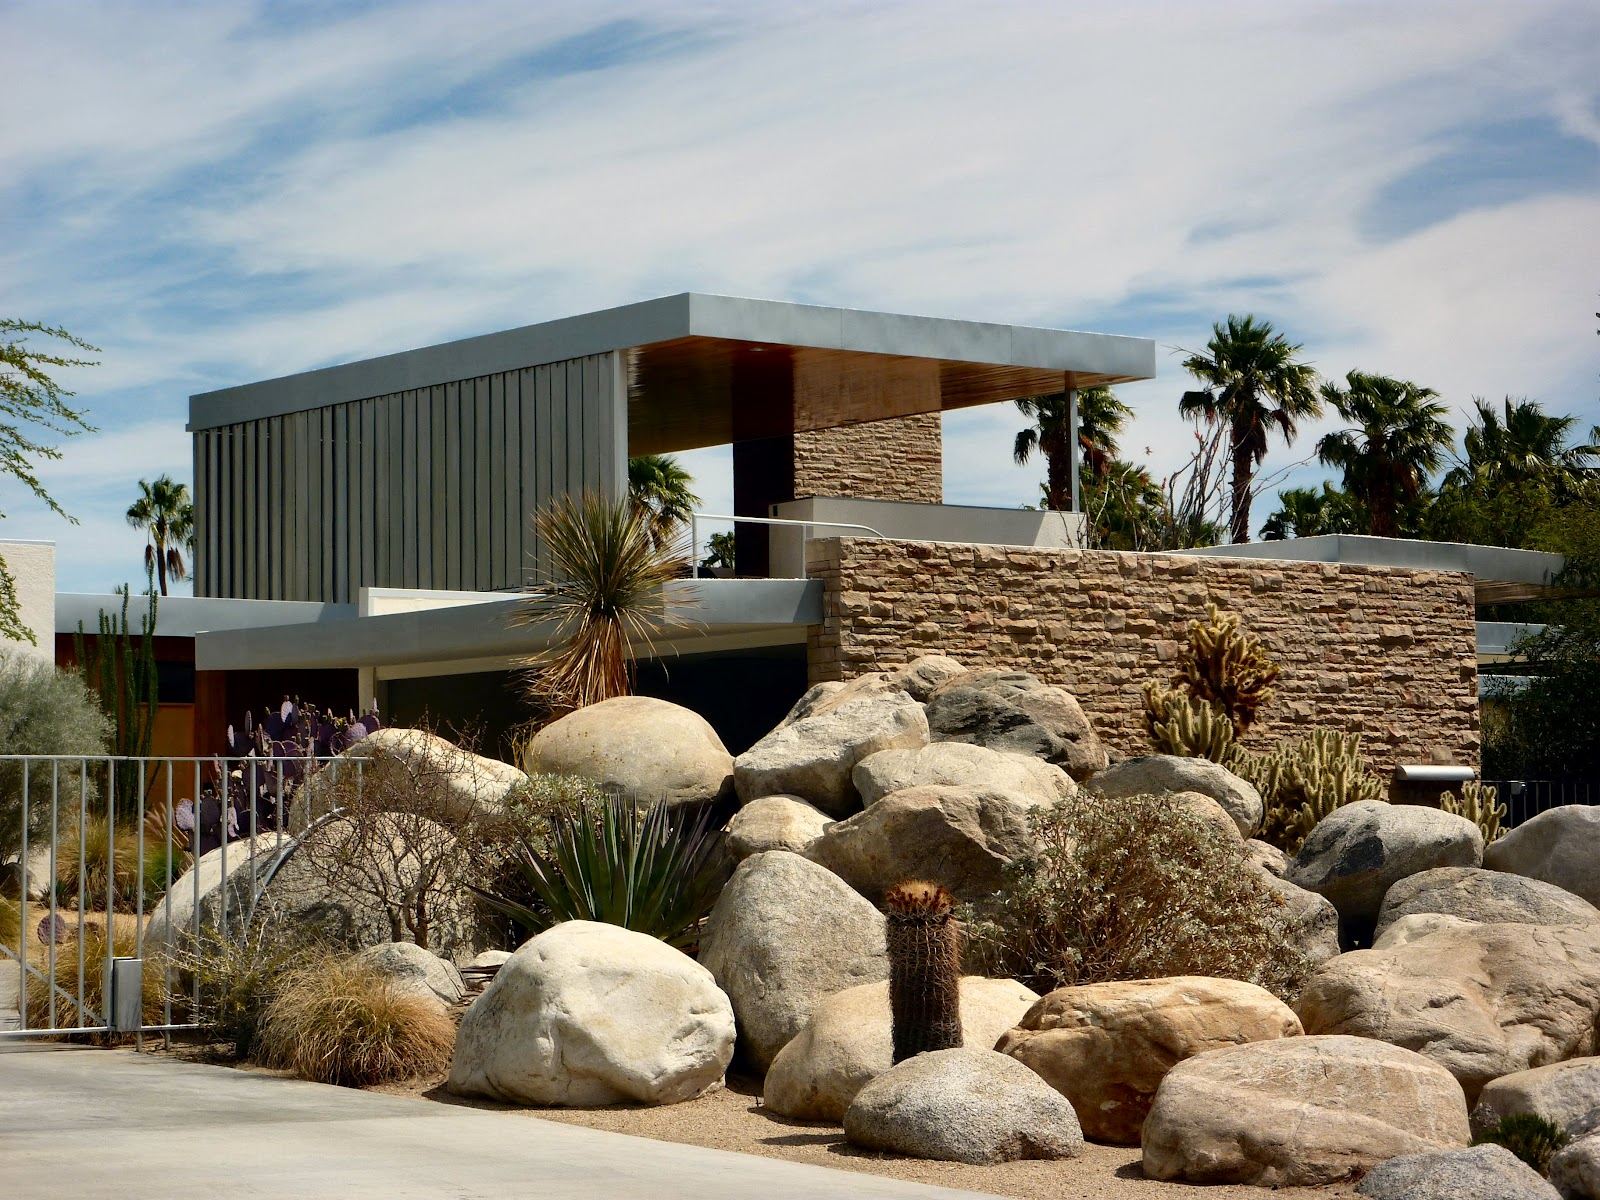 Palm Springs' Desert Modern Architecture (Image 7 of 10)